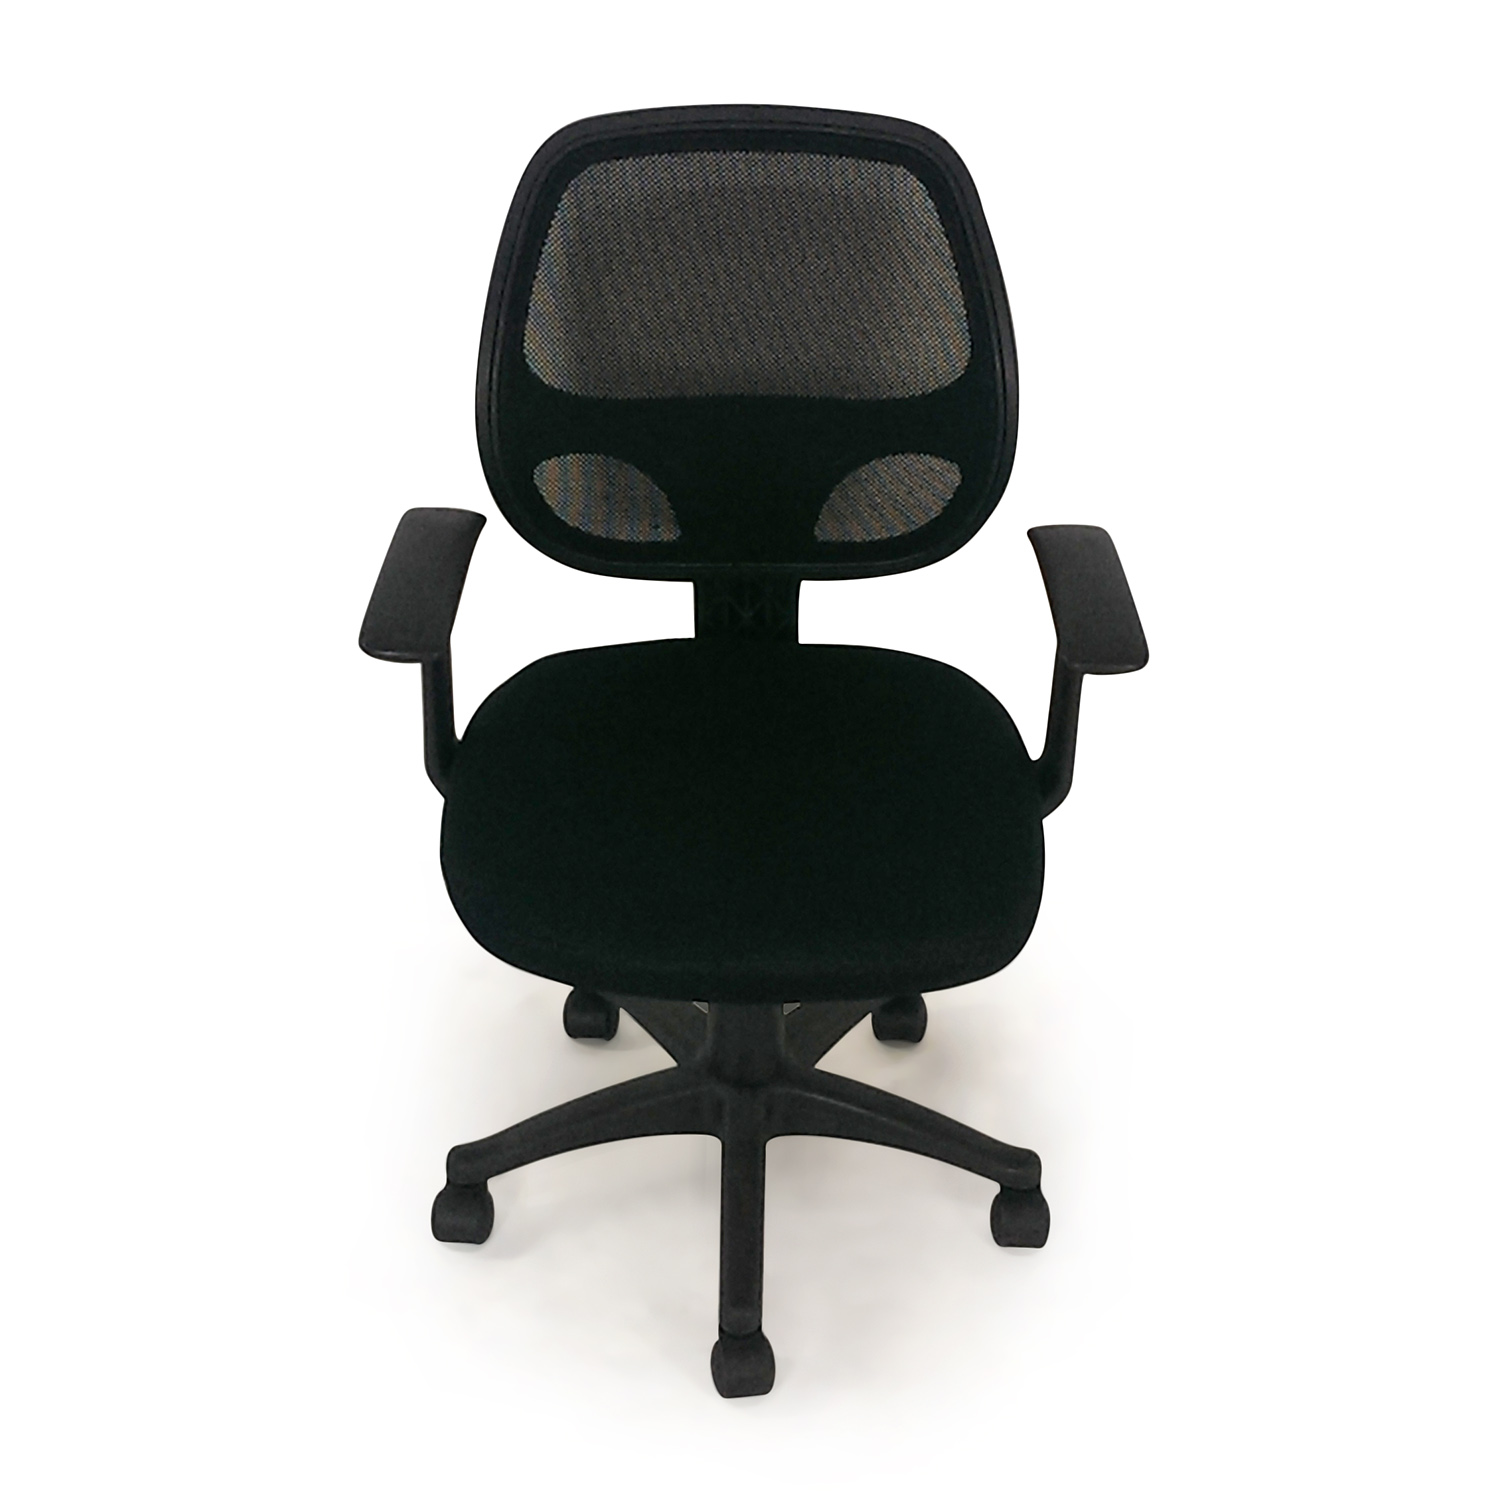 revolving chair second hand walmart white shop working from your home